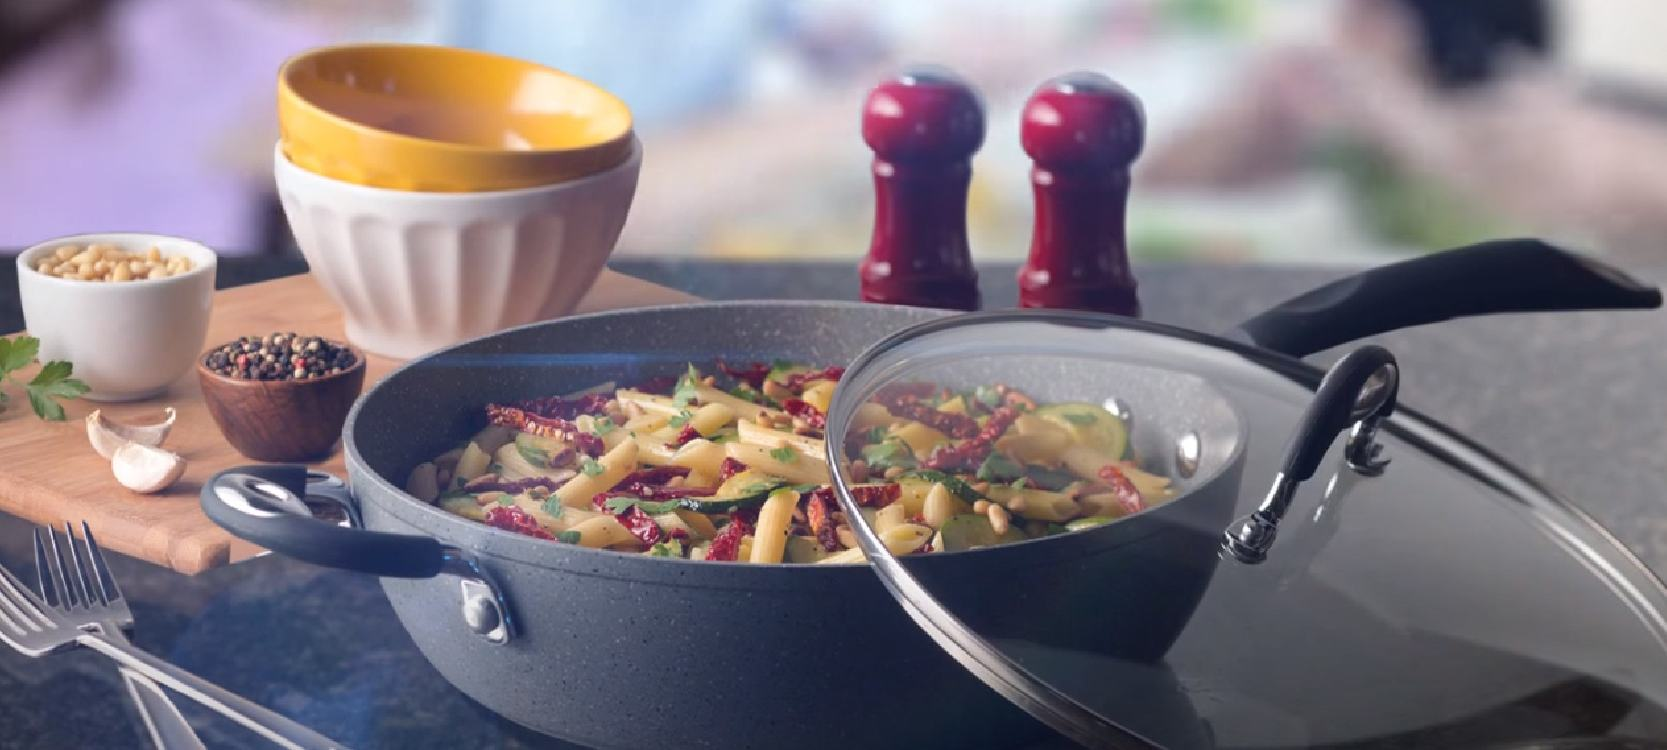 the Bialetti wok contains yummy pasta with tomatoes